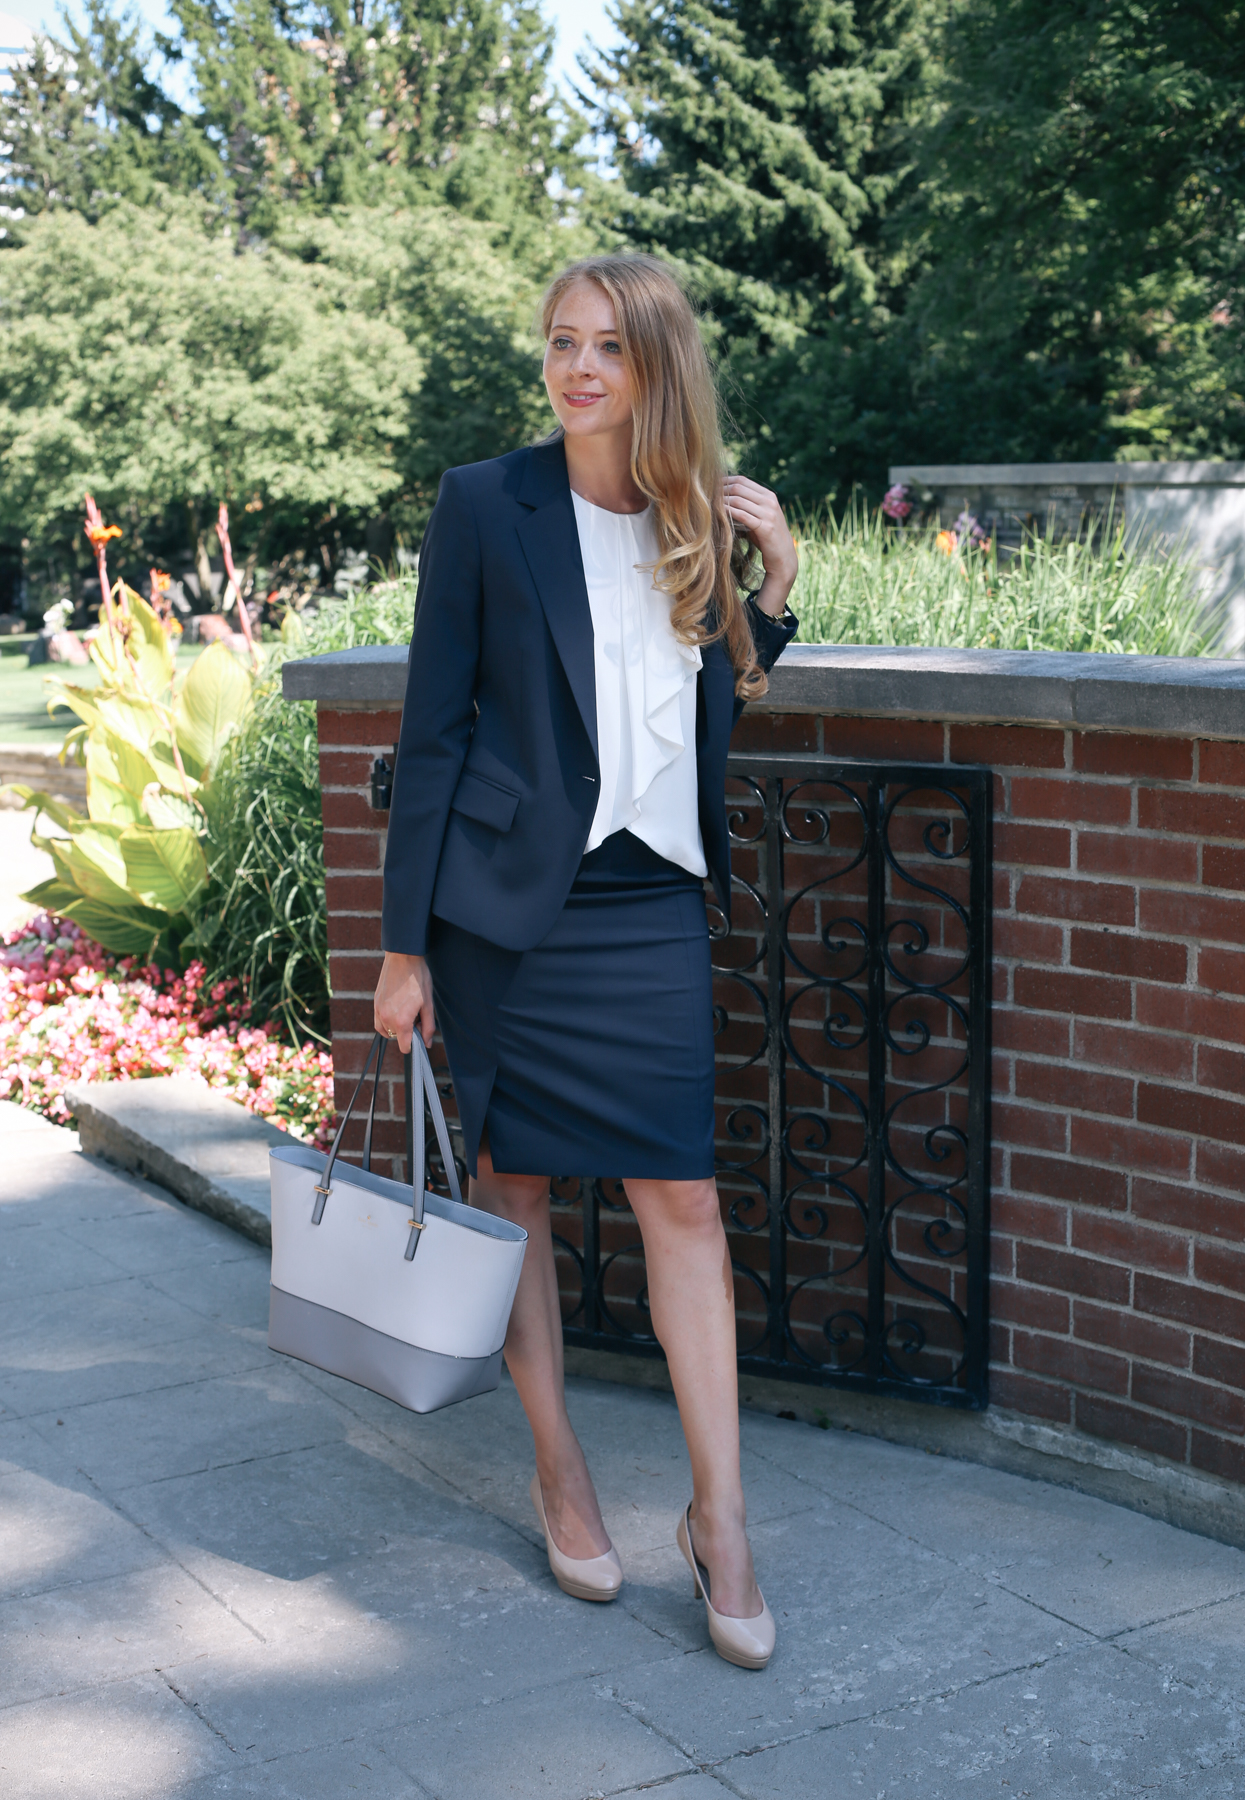 What to wear to an articling interview